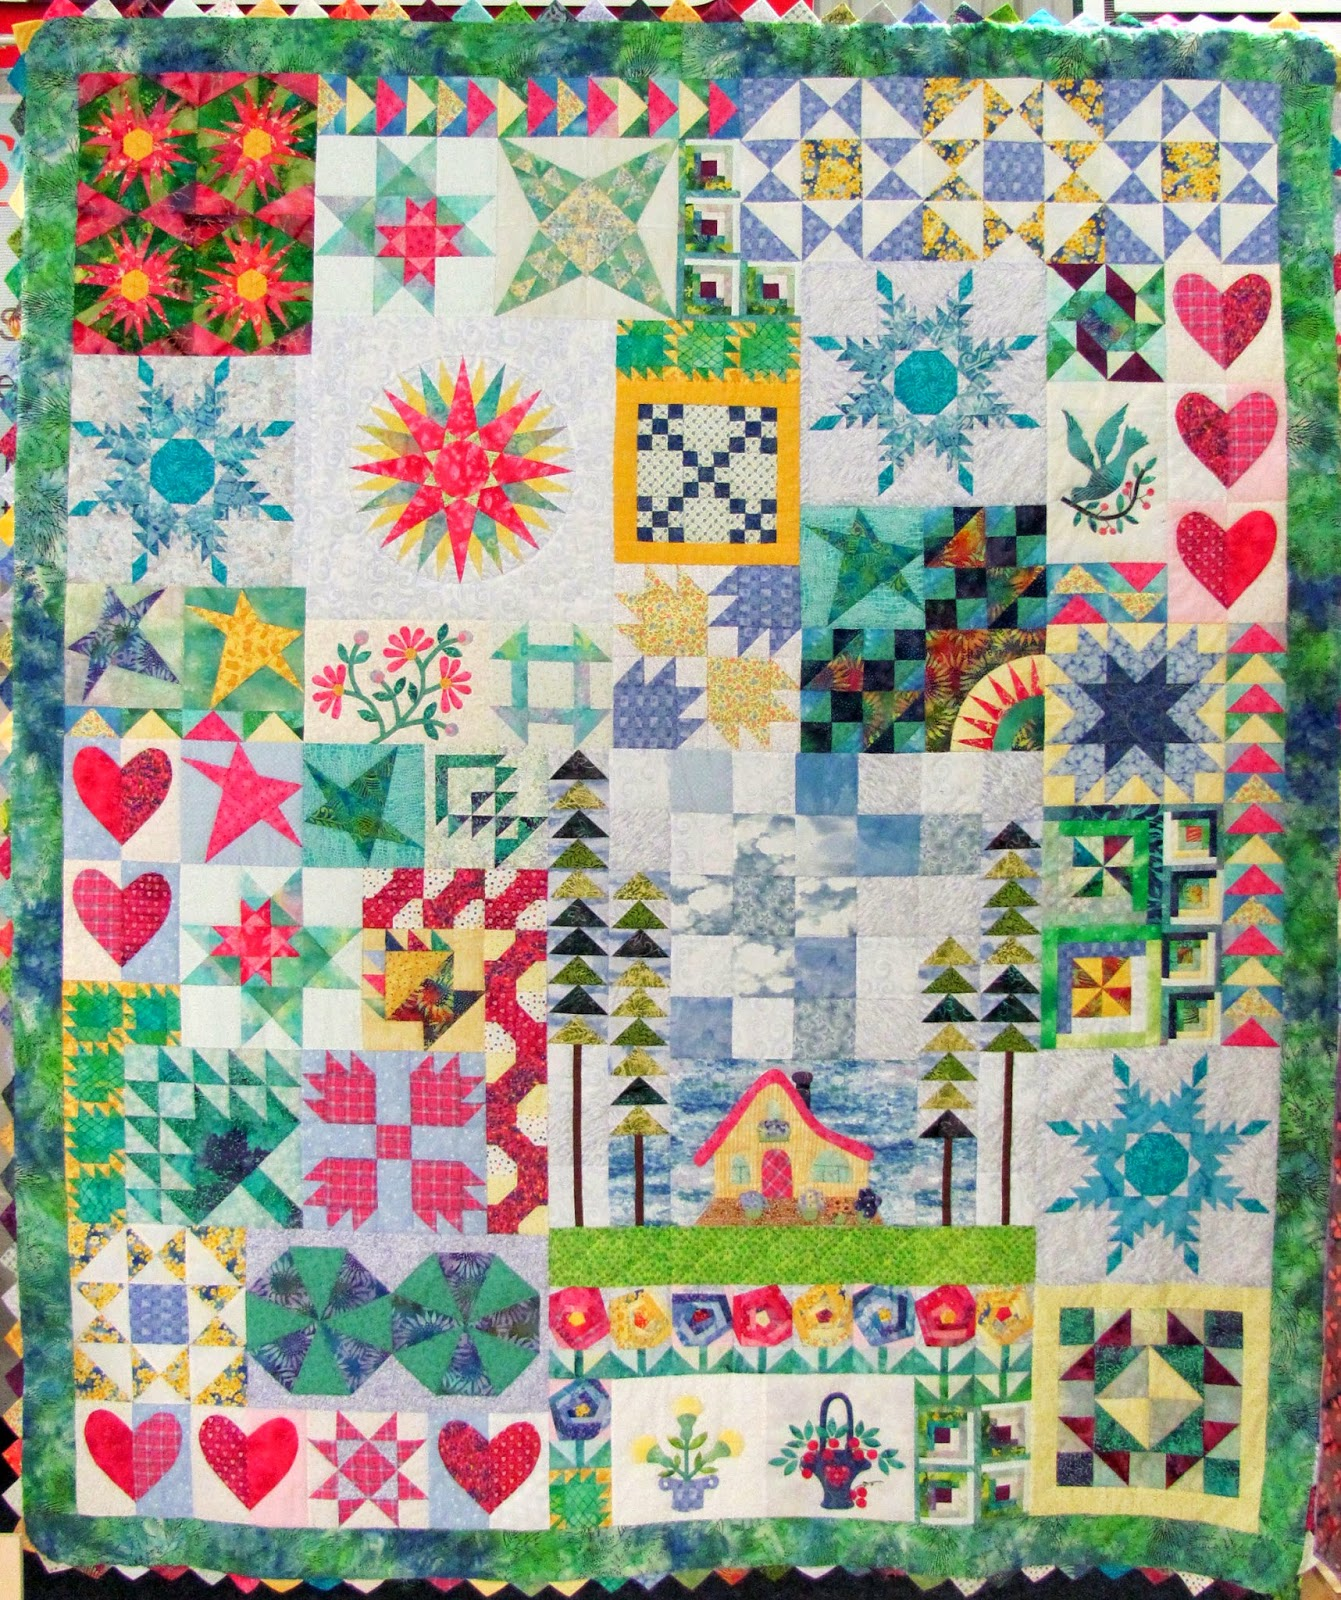 QUILTS KINGSTON 2015 - A premier Quilt Show in beautiful Kingston ... : quilt shows ontario - Adamdwight.com